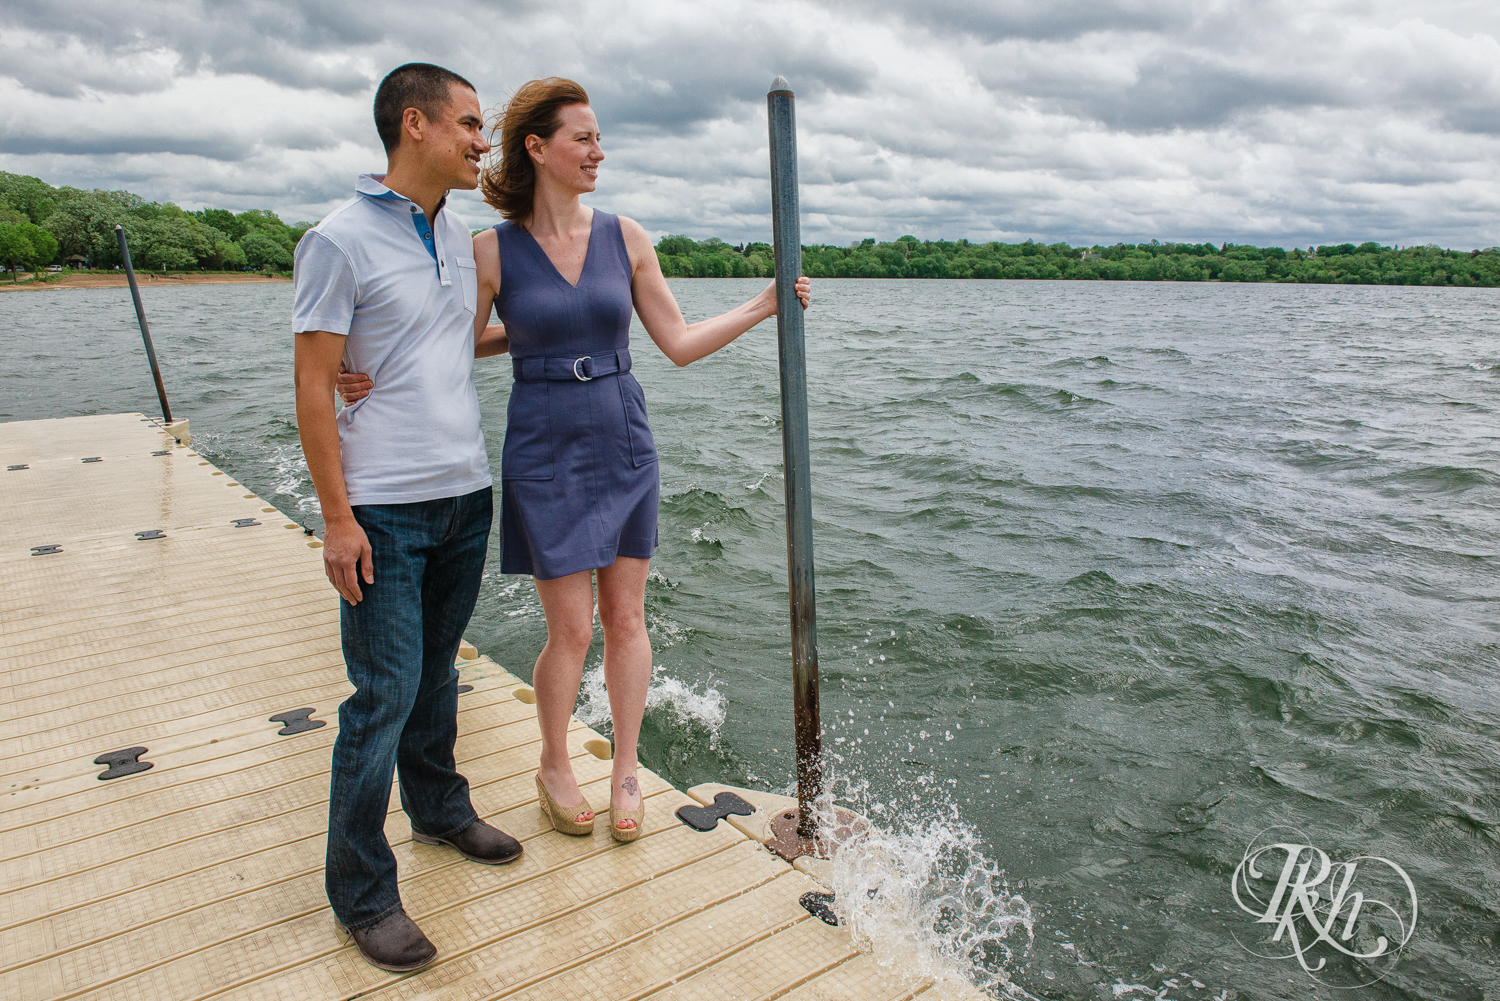 Tess and Eric - Lyndale Rose Garden - Minnesota Engagement Photography - RKH Images  (1 of 12).jpg